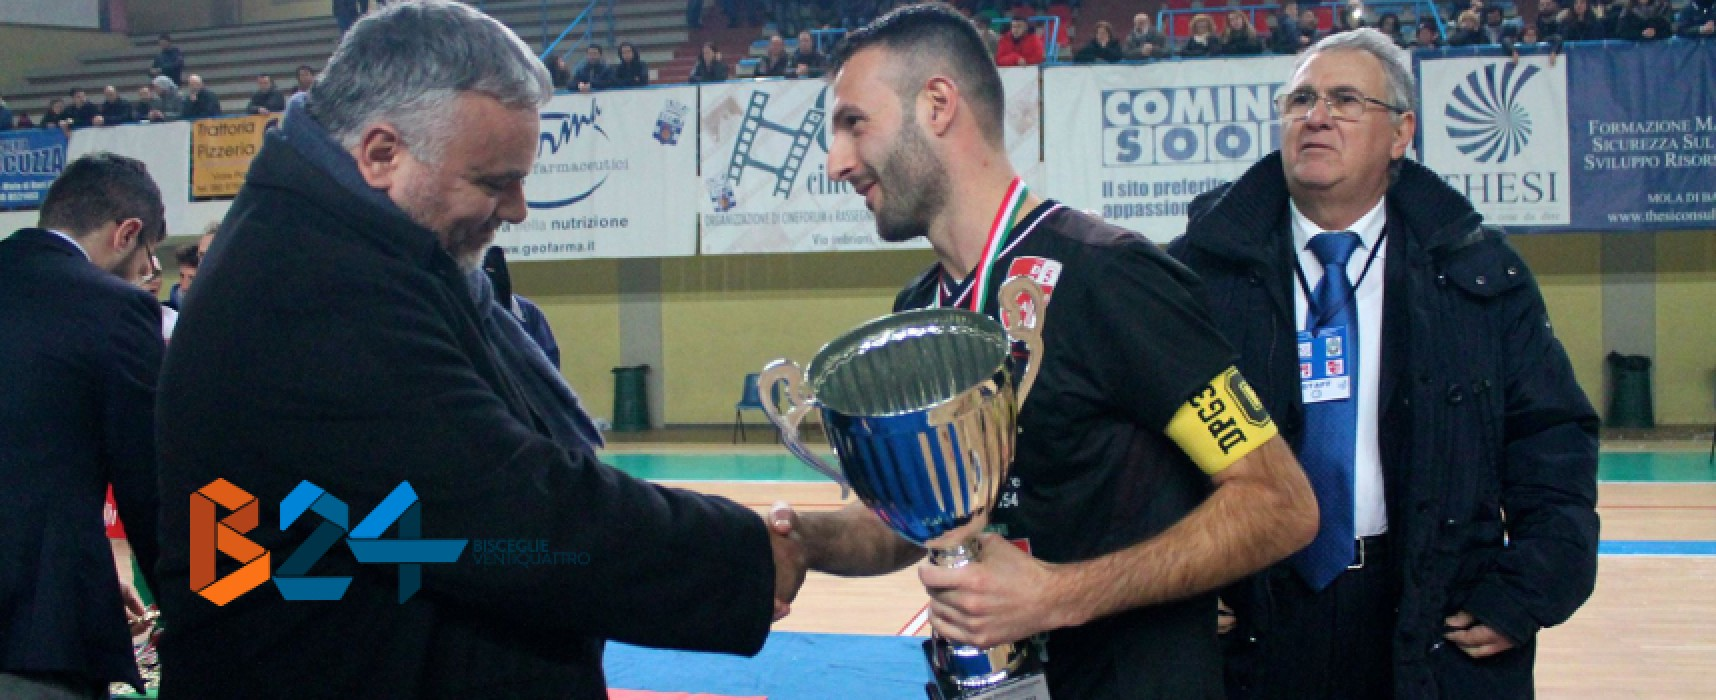 Futsal: finale Coppa Italia C1, Volare Polignano-Diaz 4-0 / VIDEO HIGHLIGHTS